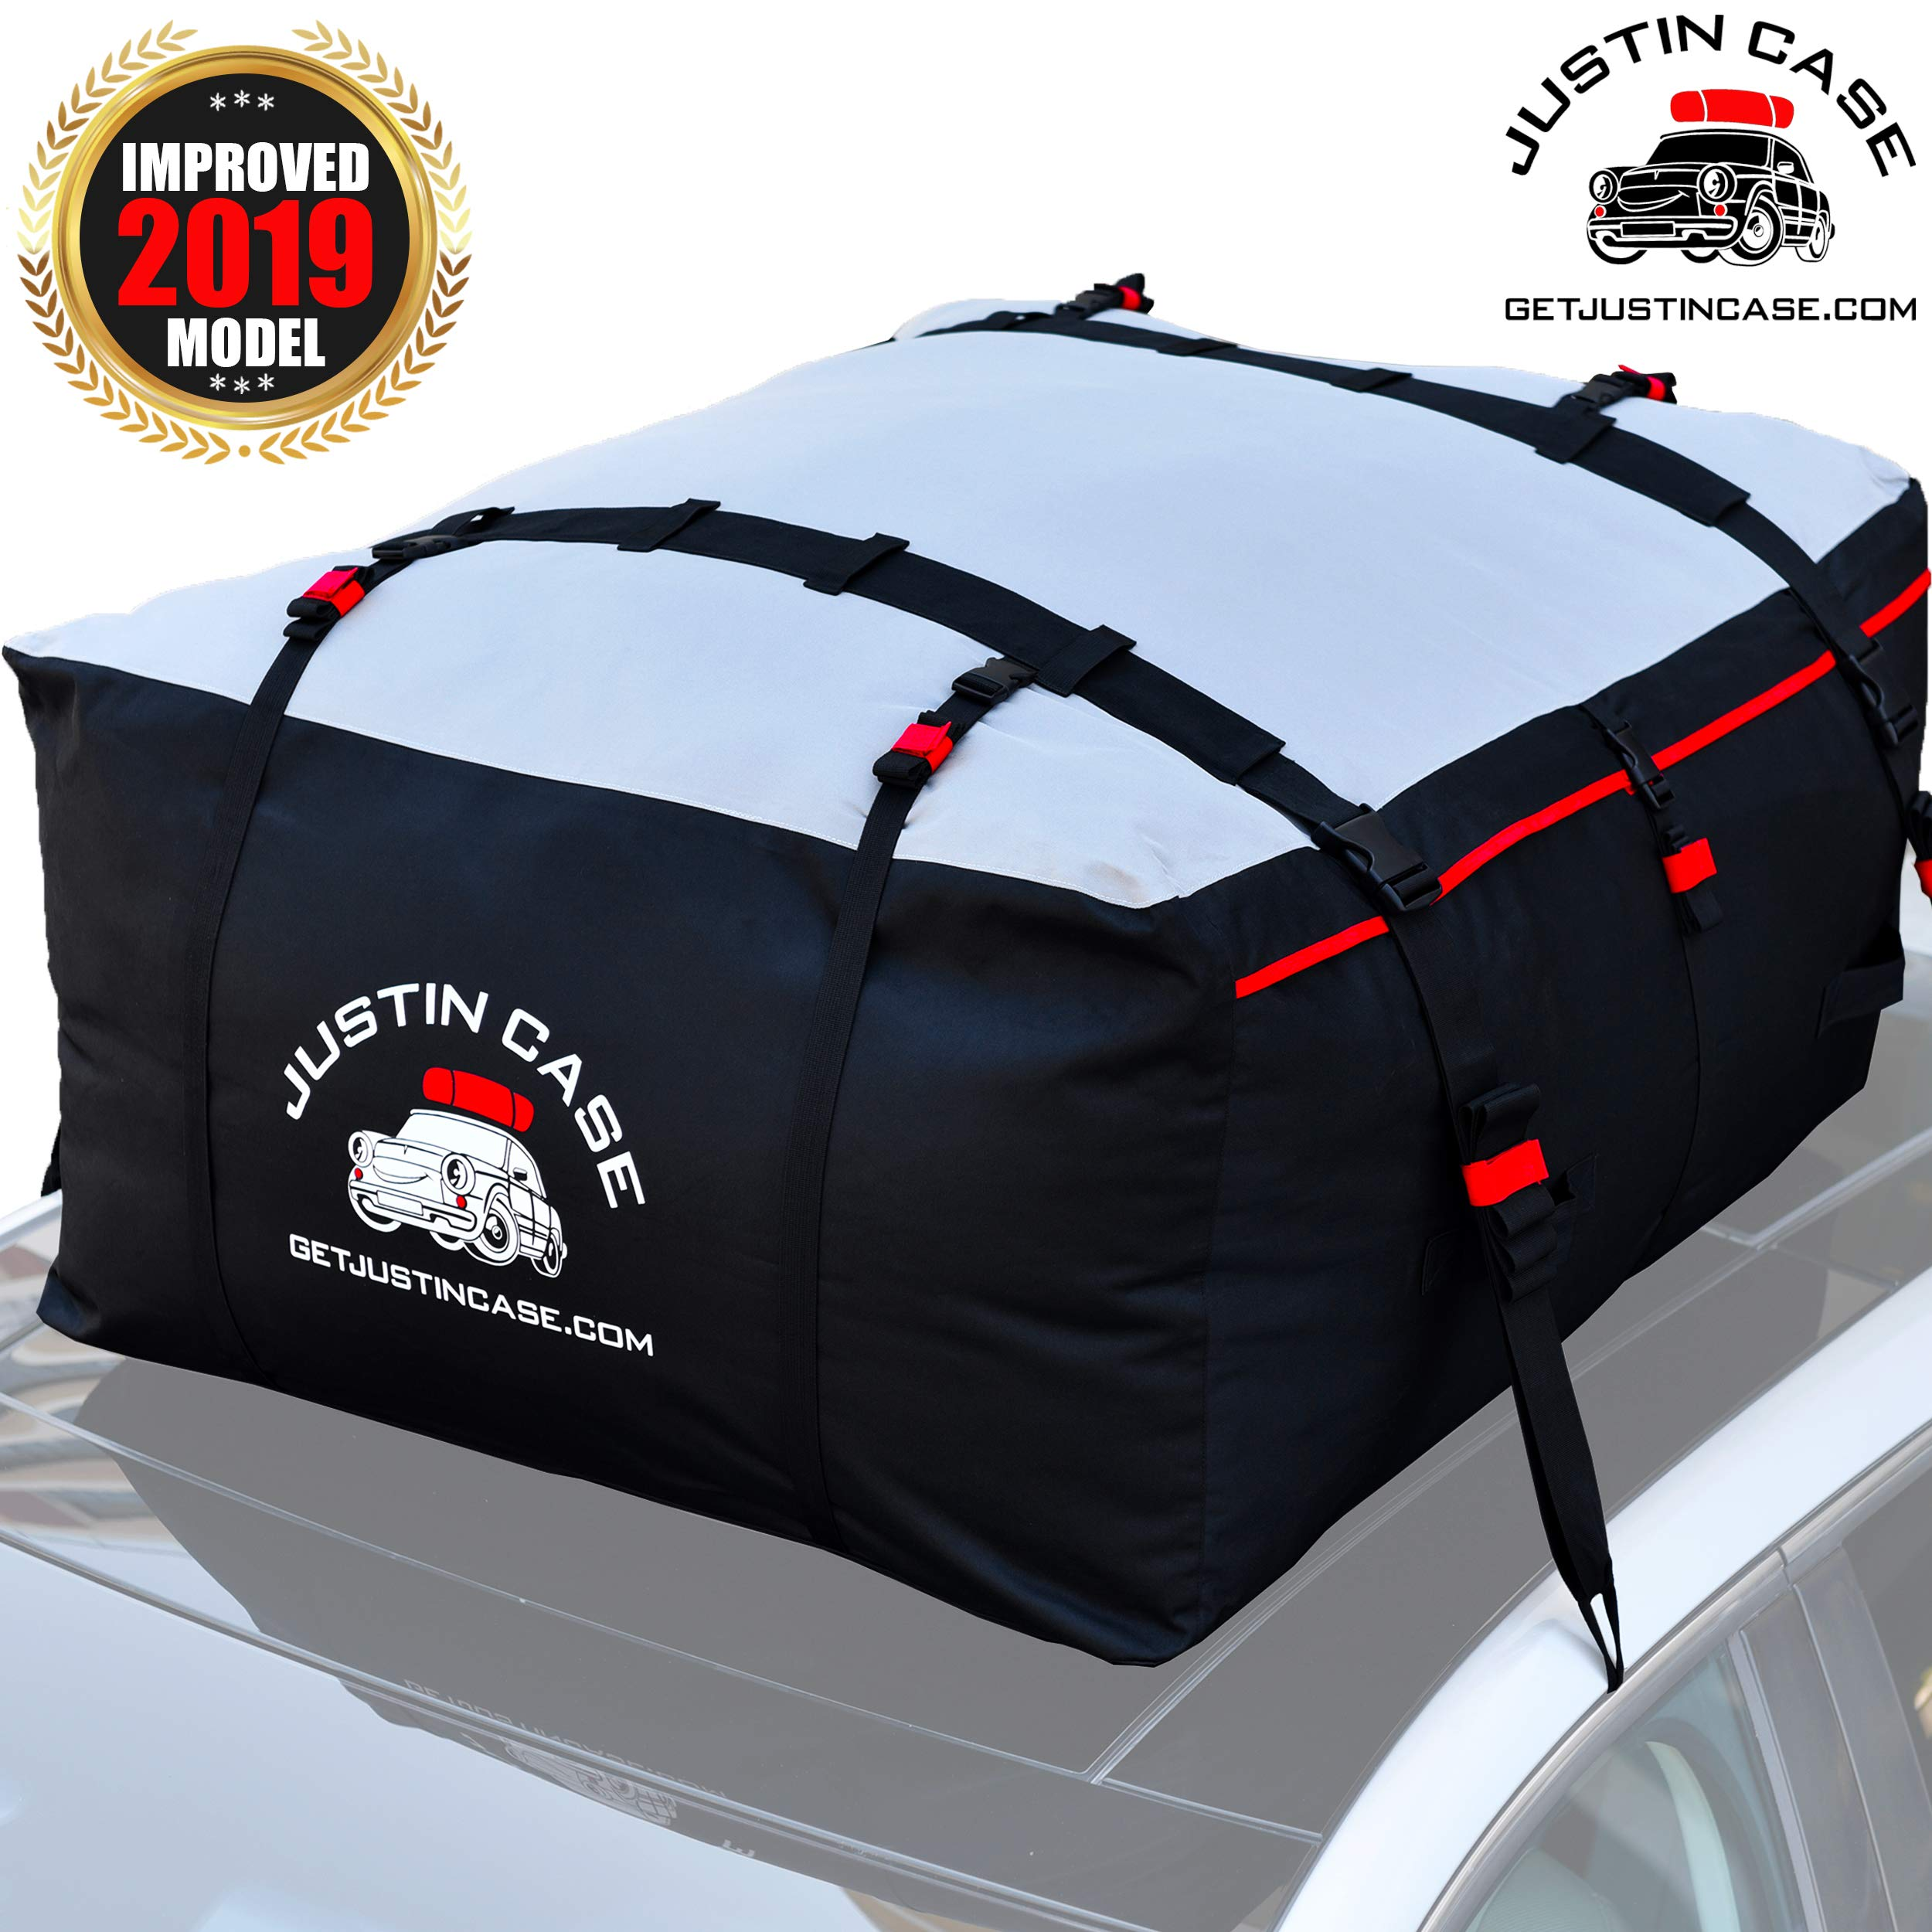 JUSTINCASE Rooftop Cargo Carrier - Car Top Carrier - Roof Bag -19 Cubic Feet - Heavy Duty, Waterproof Bag for Extra Car Roof Storage - Straps & Hooks Included, Works Without Roof Rack or Side Rails by JUSTINCASE